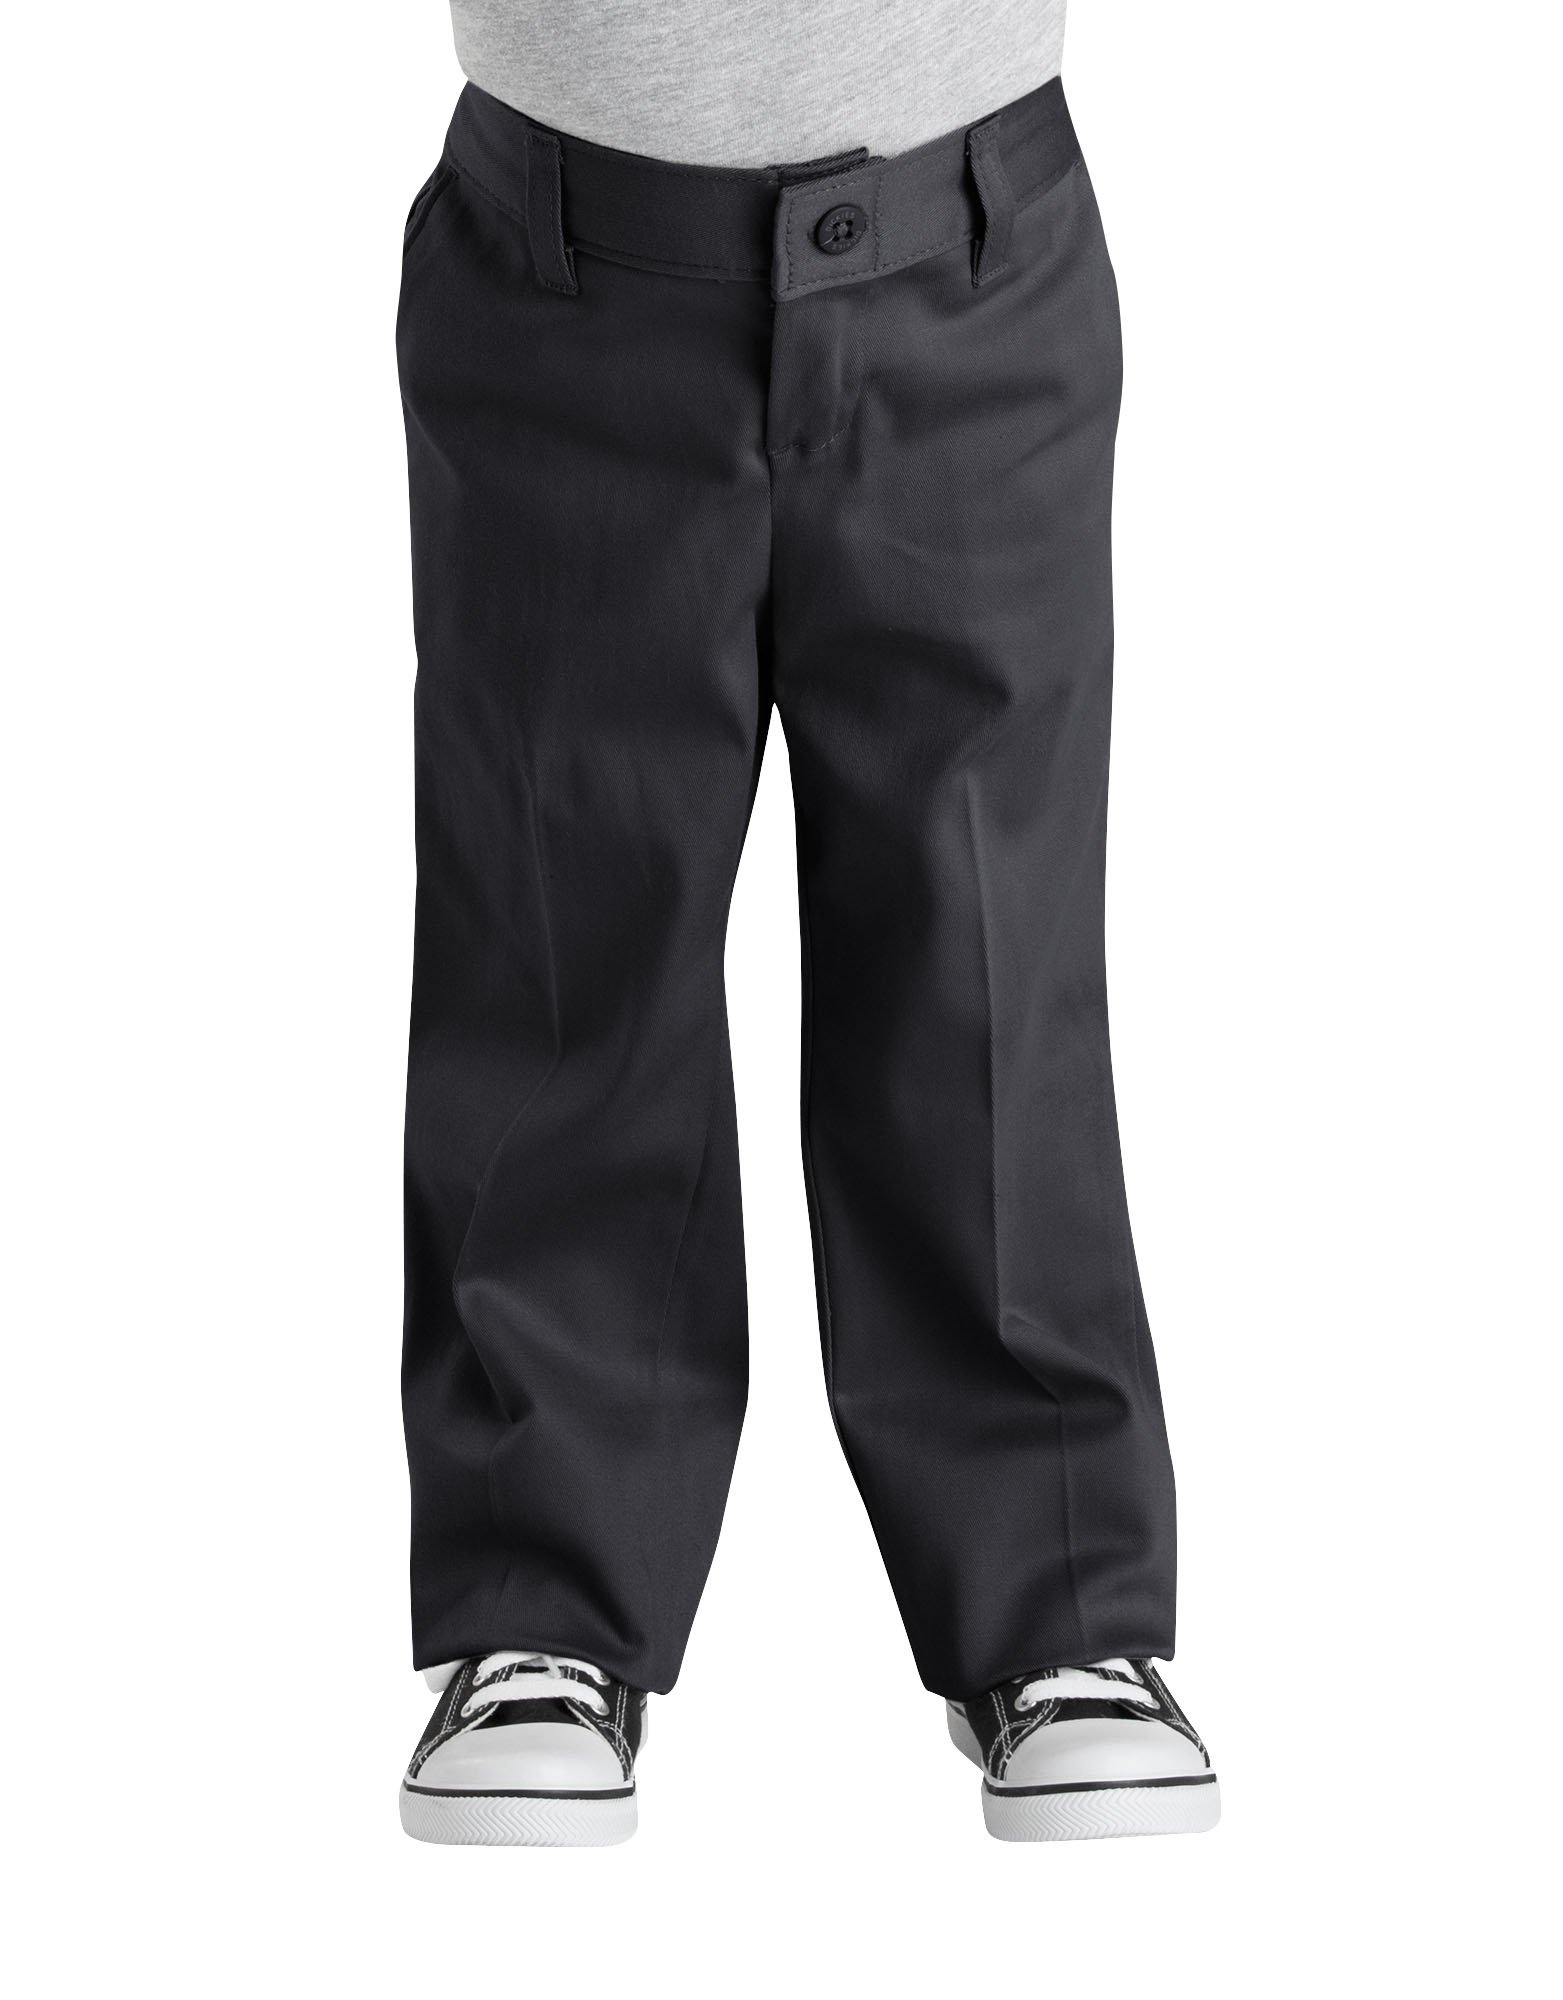 Girls' Classic Fit Straight Leg Stretch Twill Pants, 4-6 - Black (BK)